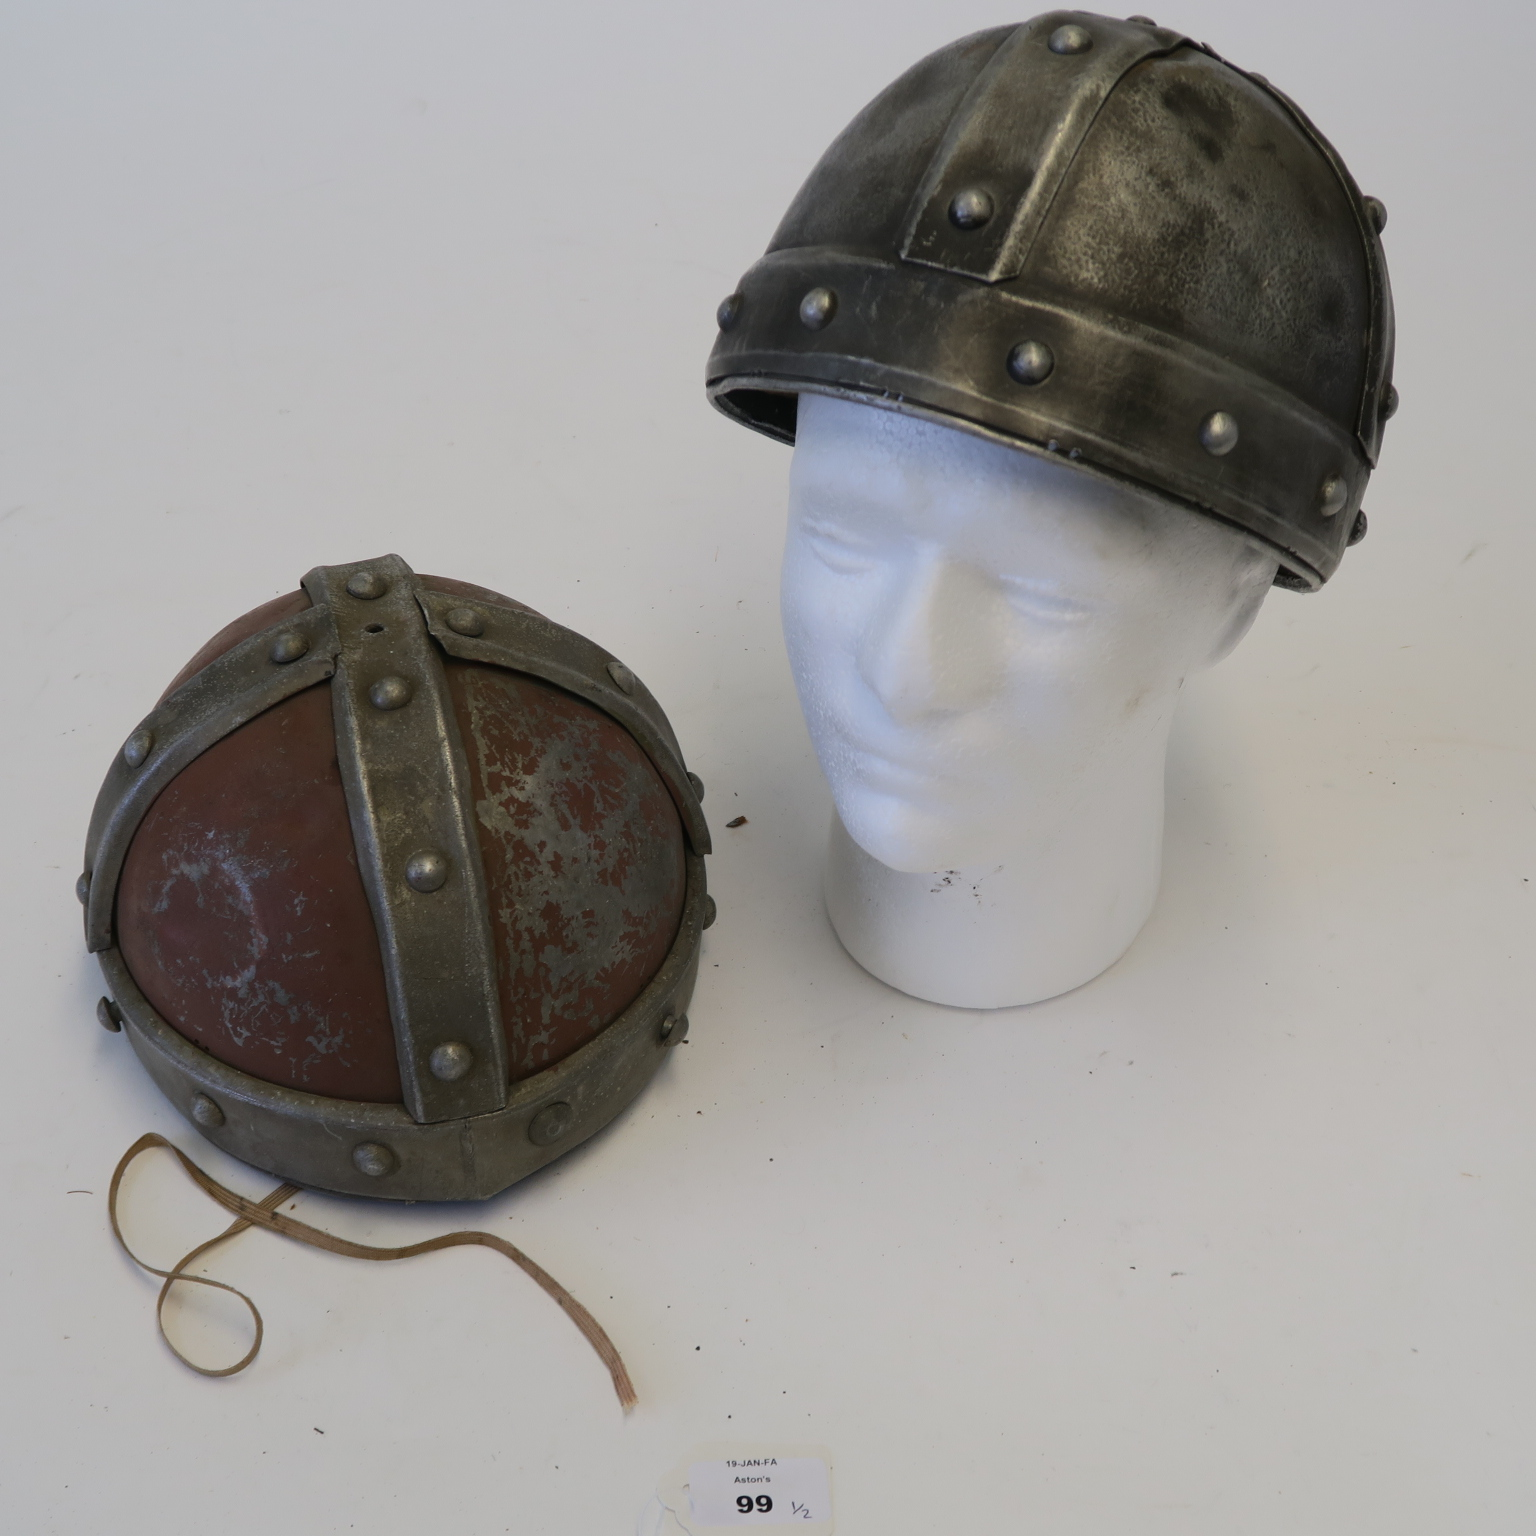 Lot 51 - Two Robin Hood movie prop helmets (Errol Flynn era) worn and showing signed of rust with metal